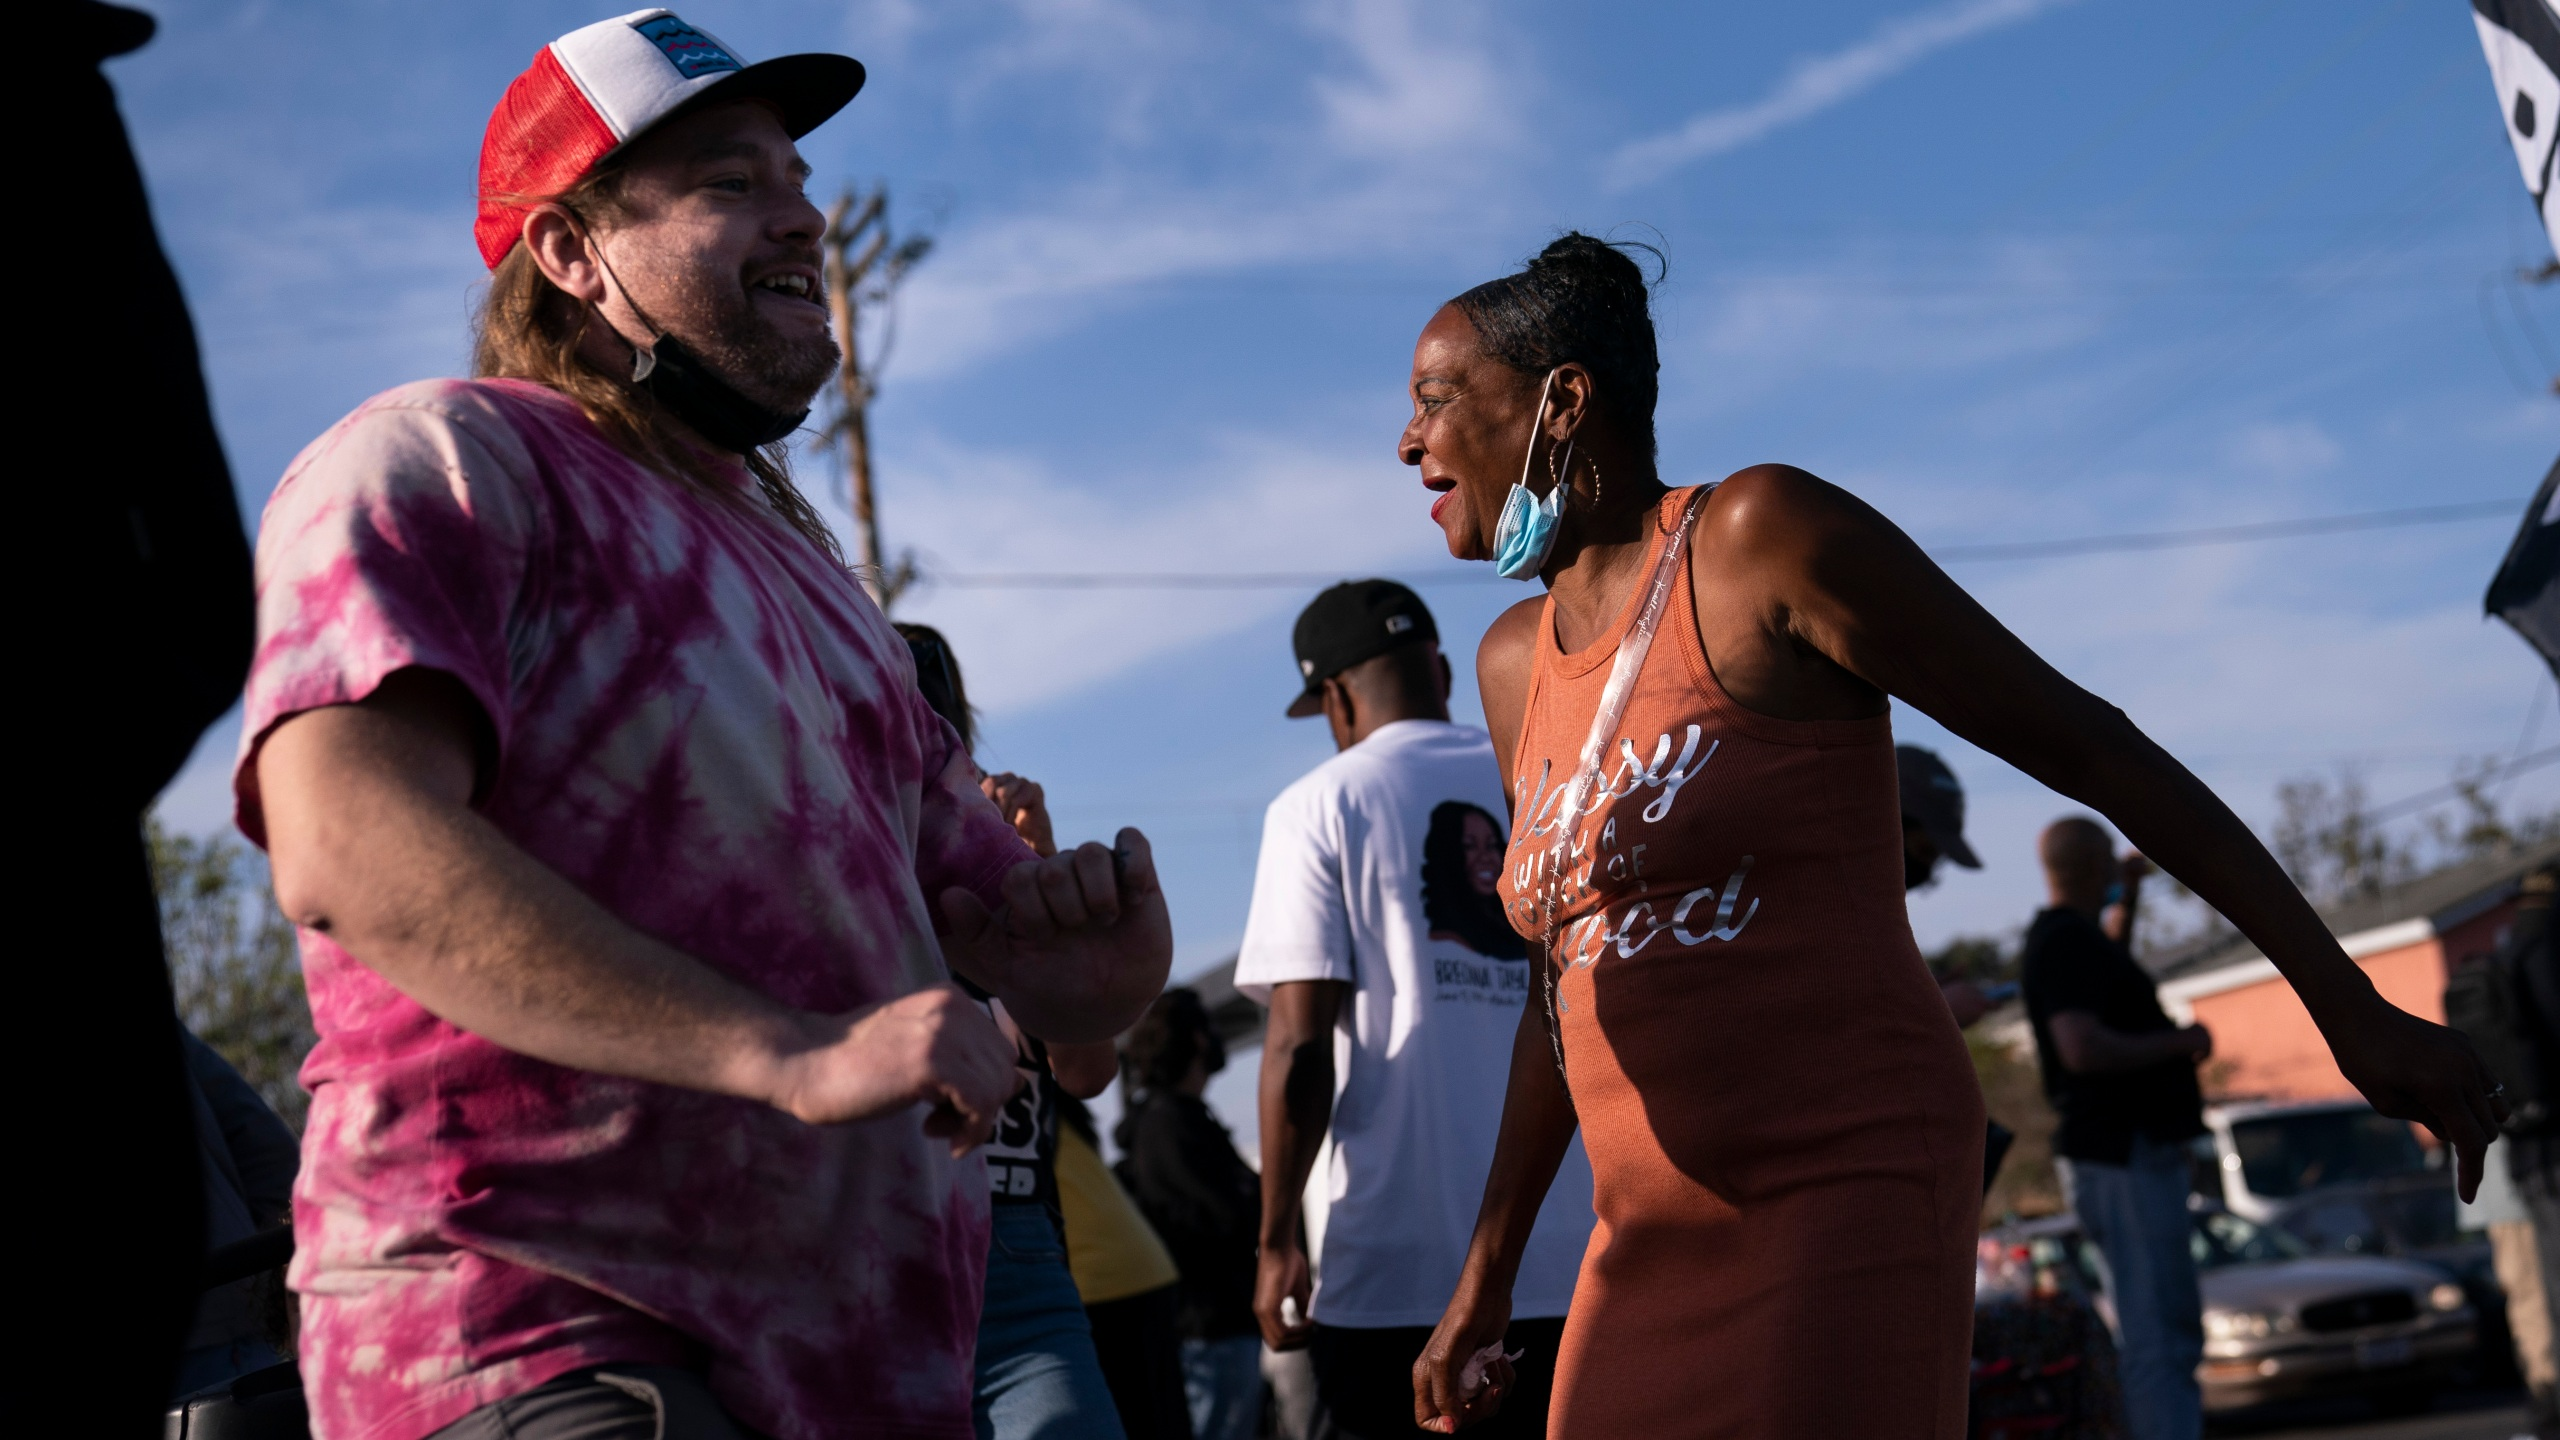 Sherri Burks, right, and Dominic Fawcett dance at the intersection of Florence and Normandie Avenues, on April 20, 2021, in Los Angeles, after a guilty verdict was announced at the trial of former Minneapolis police Officer Derek Chauvin for the 2020 death of George Floyd. (AP Photo/Jae C. Hong)